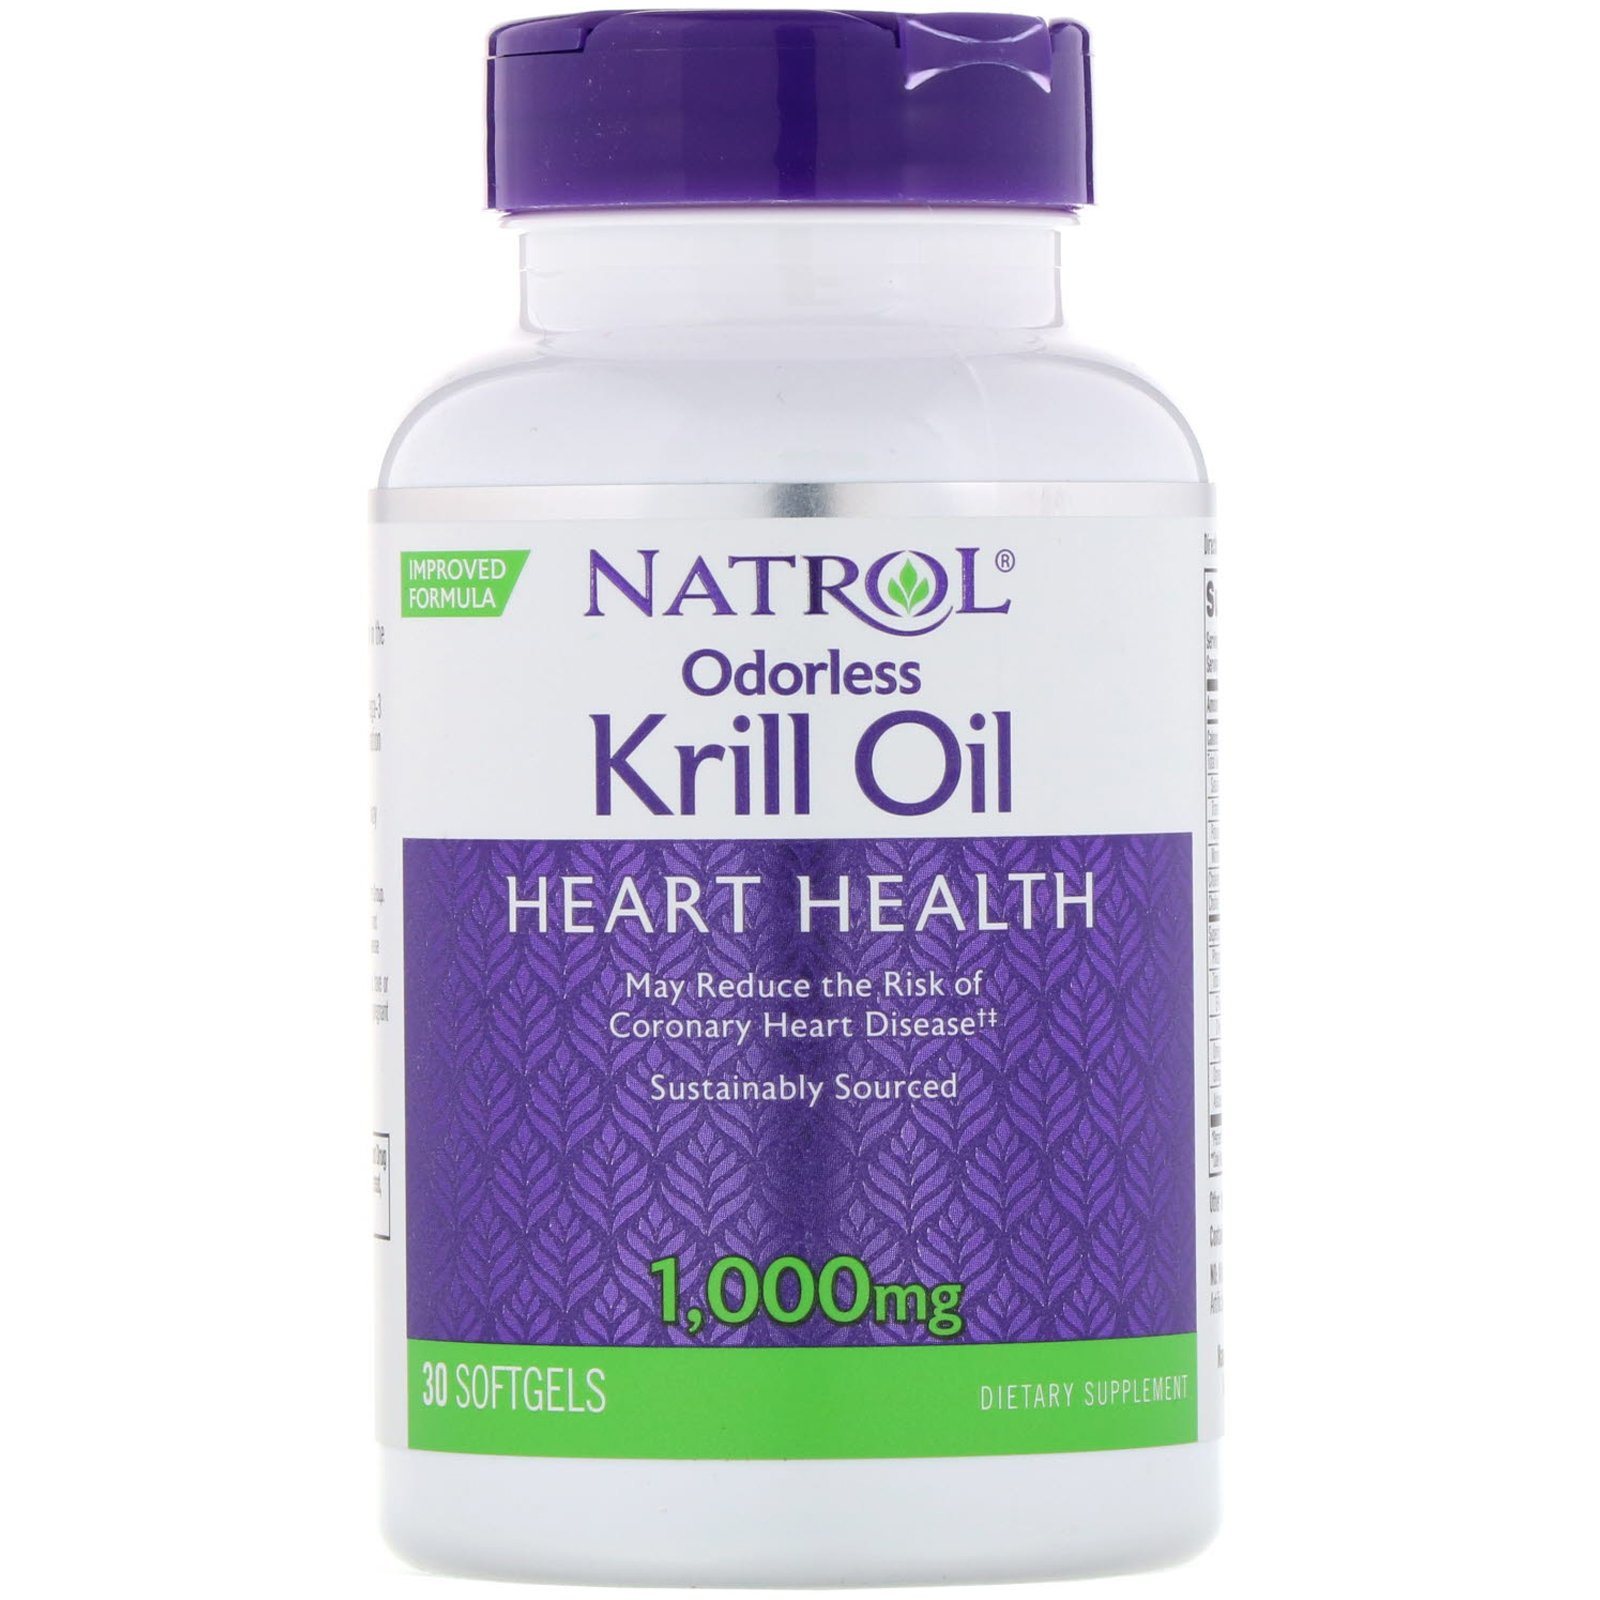 Масло криля, Odorless Krill Oil, Natrol, 1000 мг, 30 гелевиех капсул